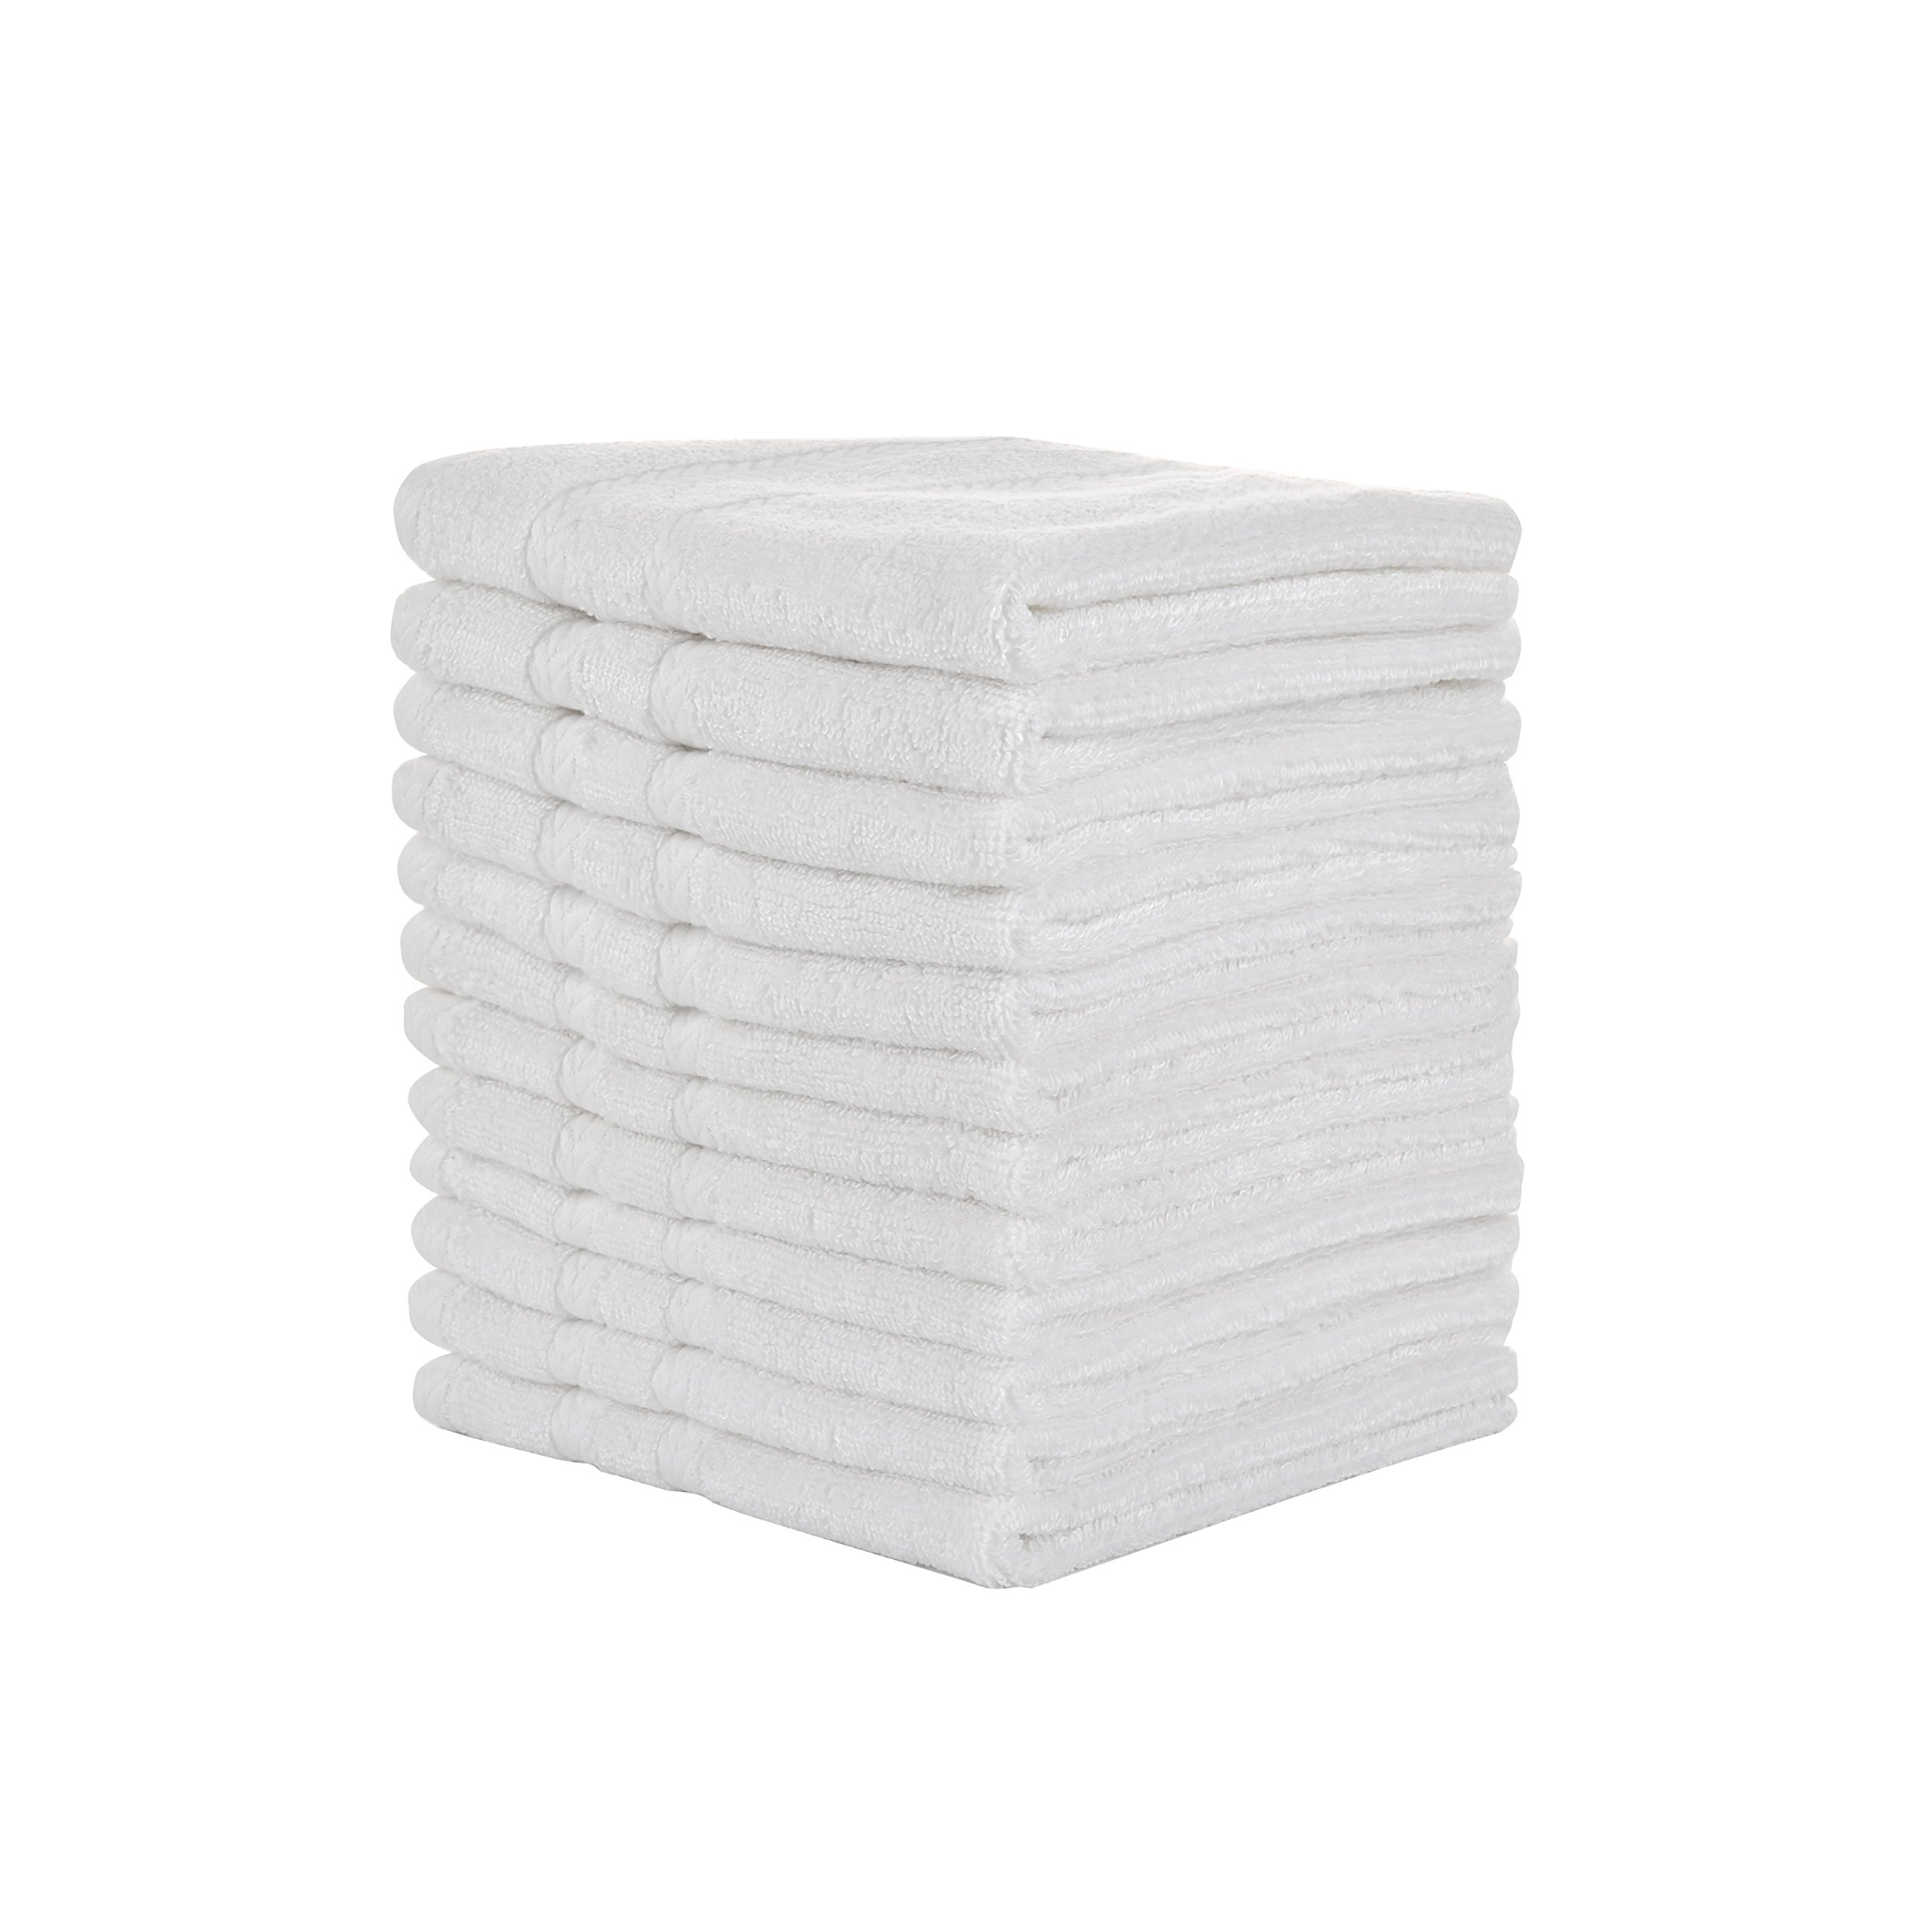 Natural Bamboo Cotton White Washcloths Set of 12, 13 X 13 inches -Ultra Soft and Absorbent